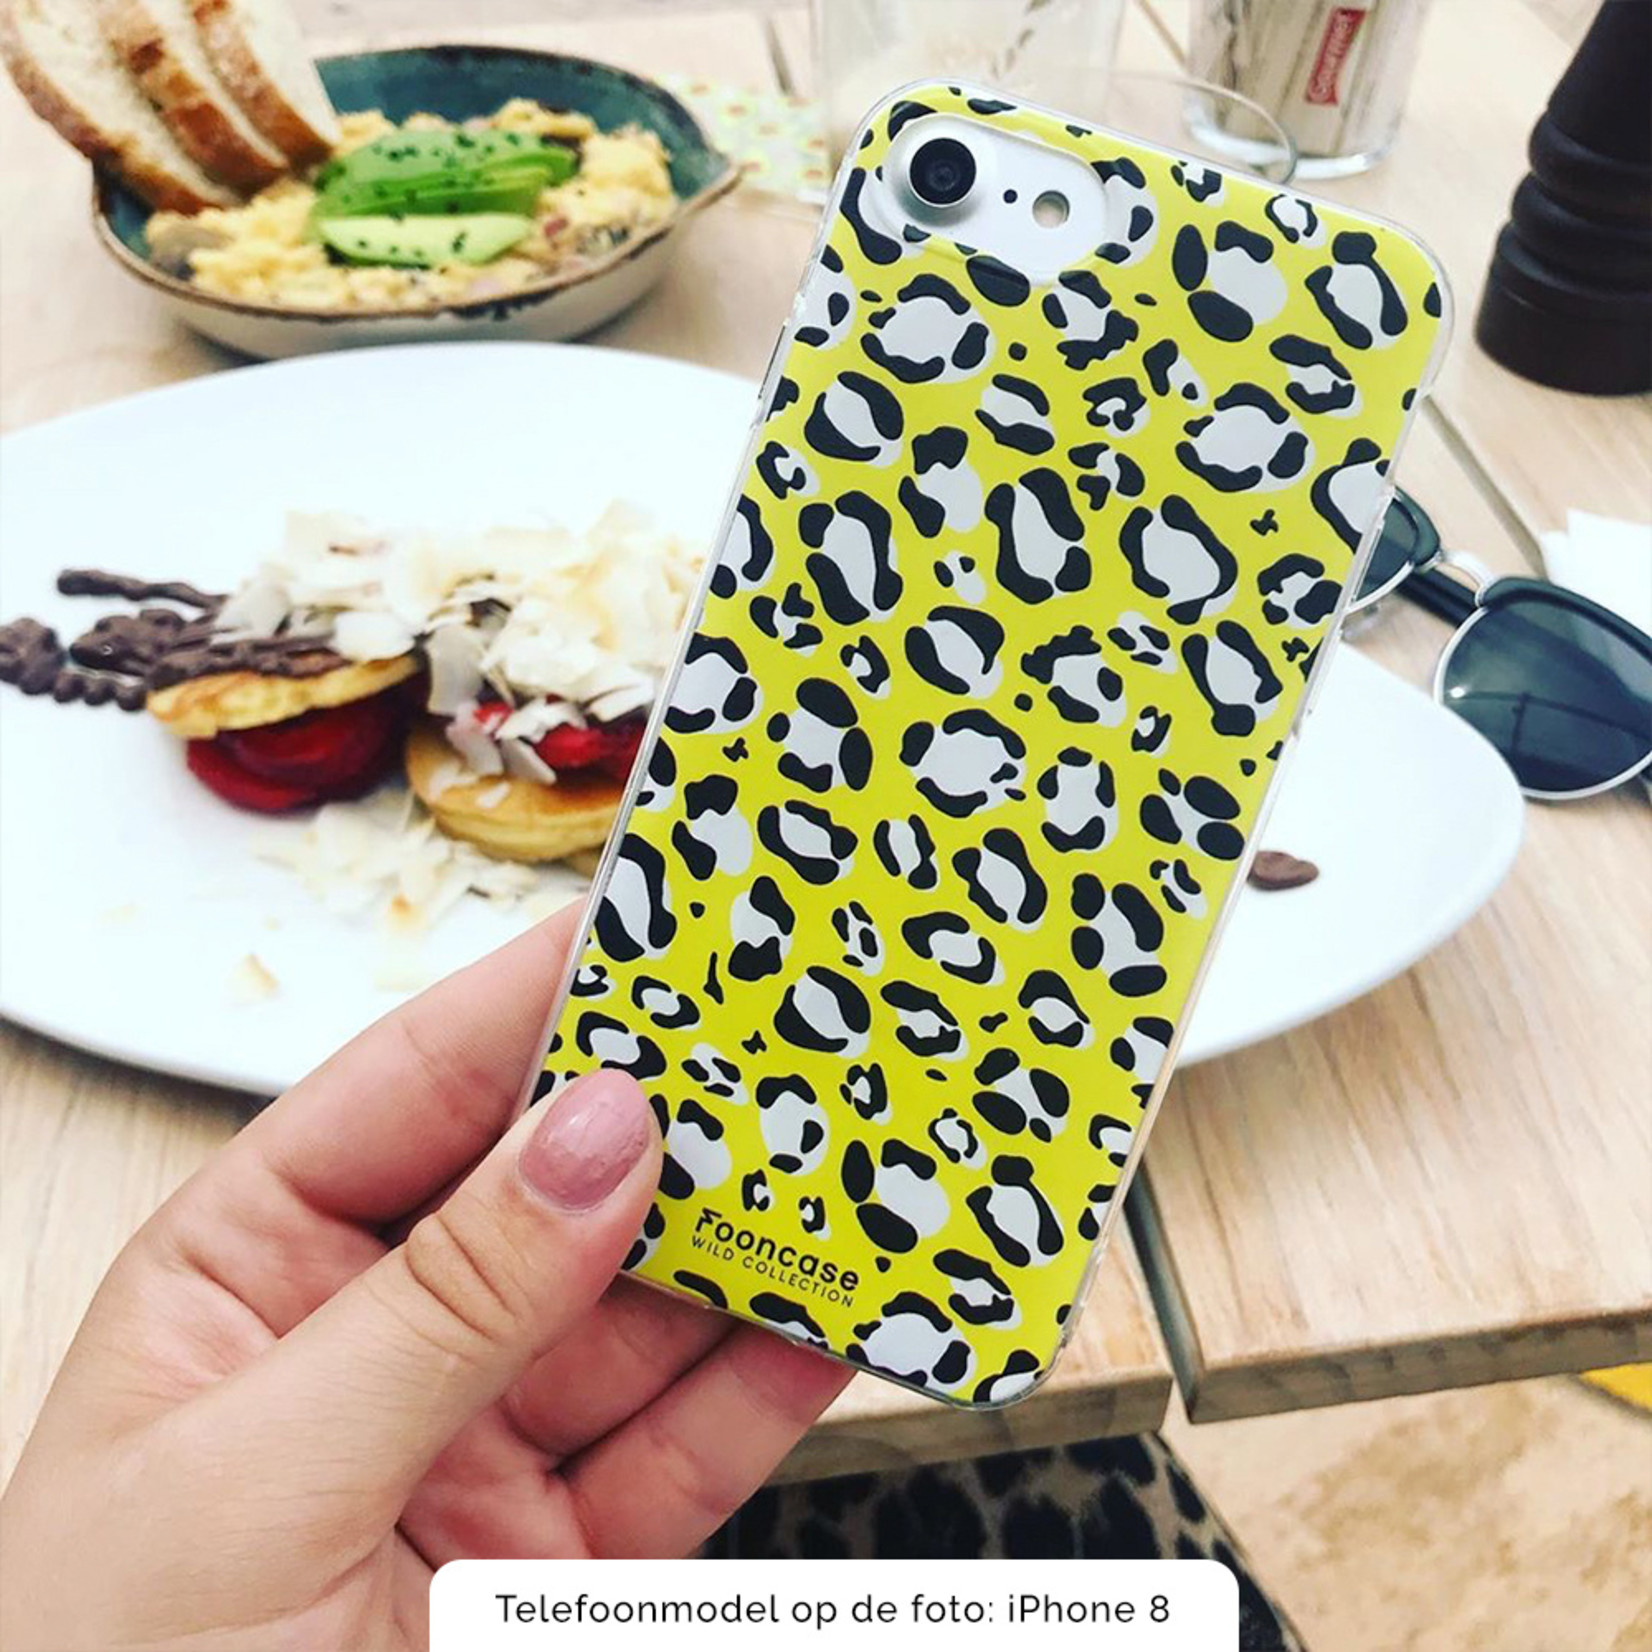 FOONCASE Huawei P8 Lite 2017 hoesje TPU Soft Case - Back Cover - WILD COLLECTION / Luipaard / Leopard print / Geel